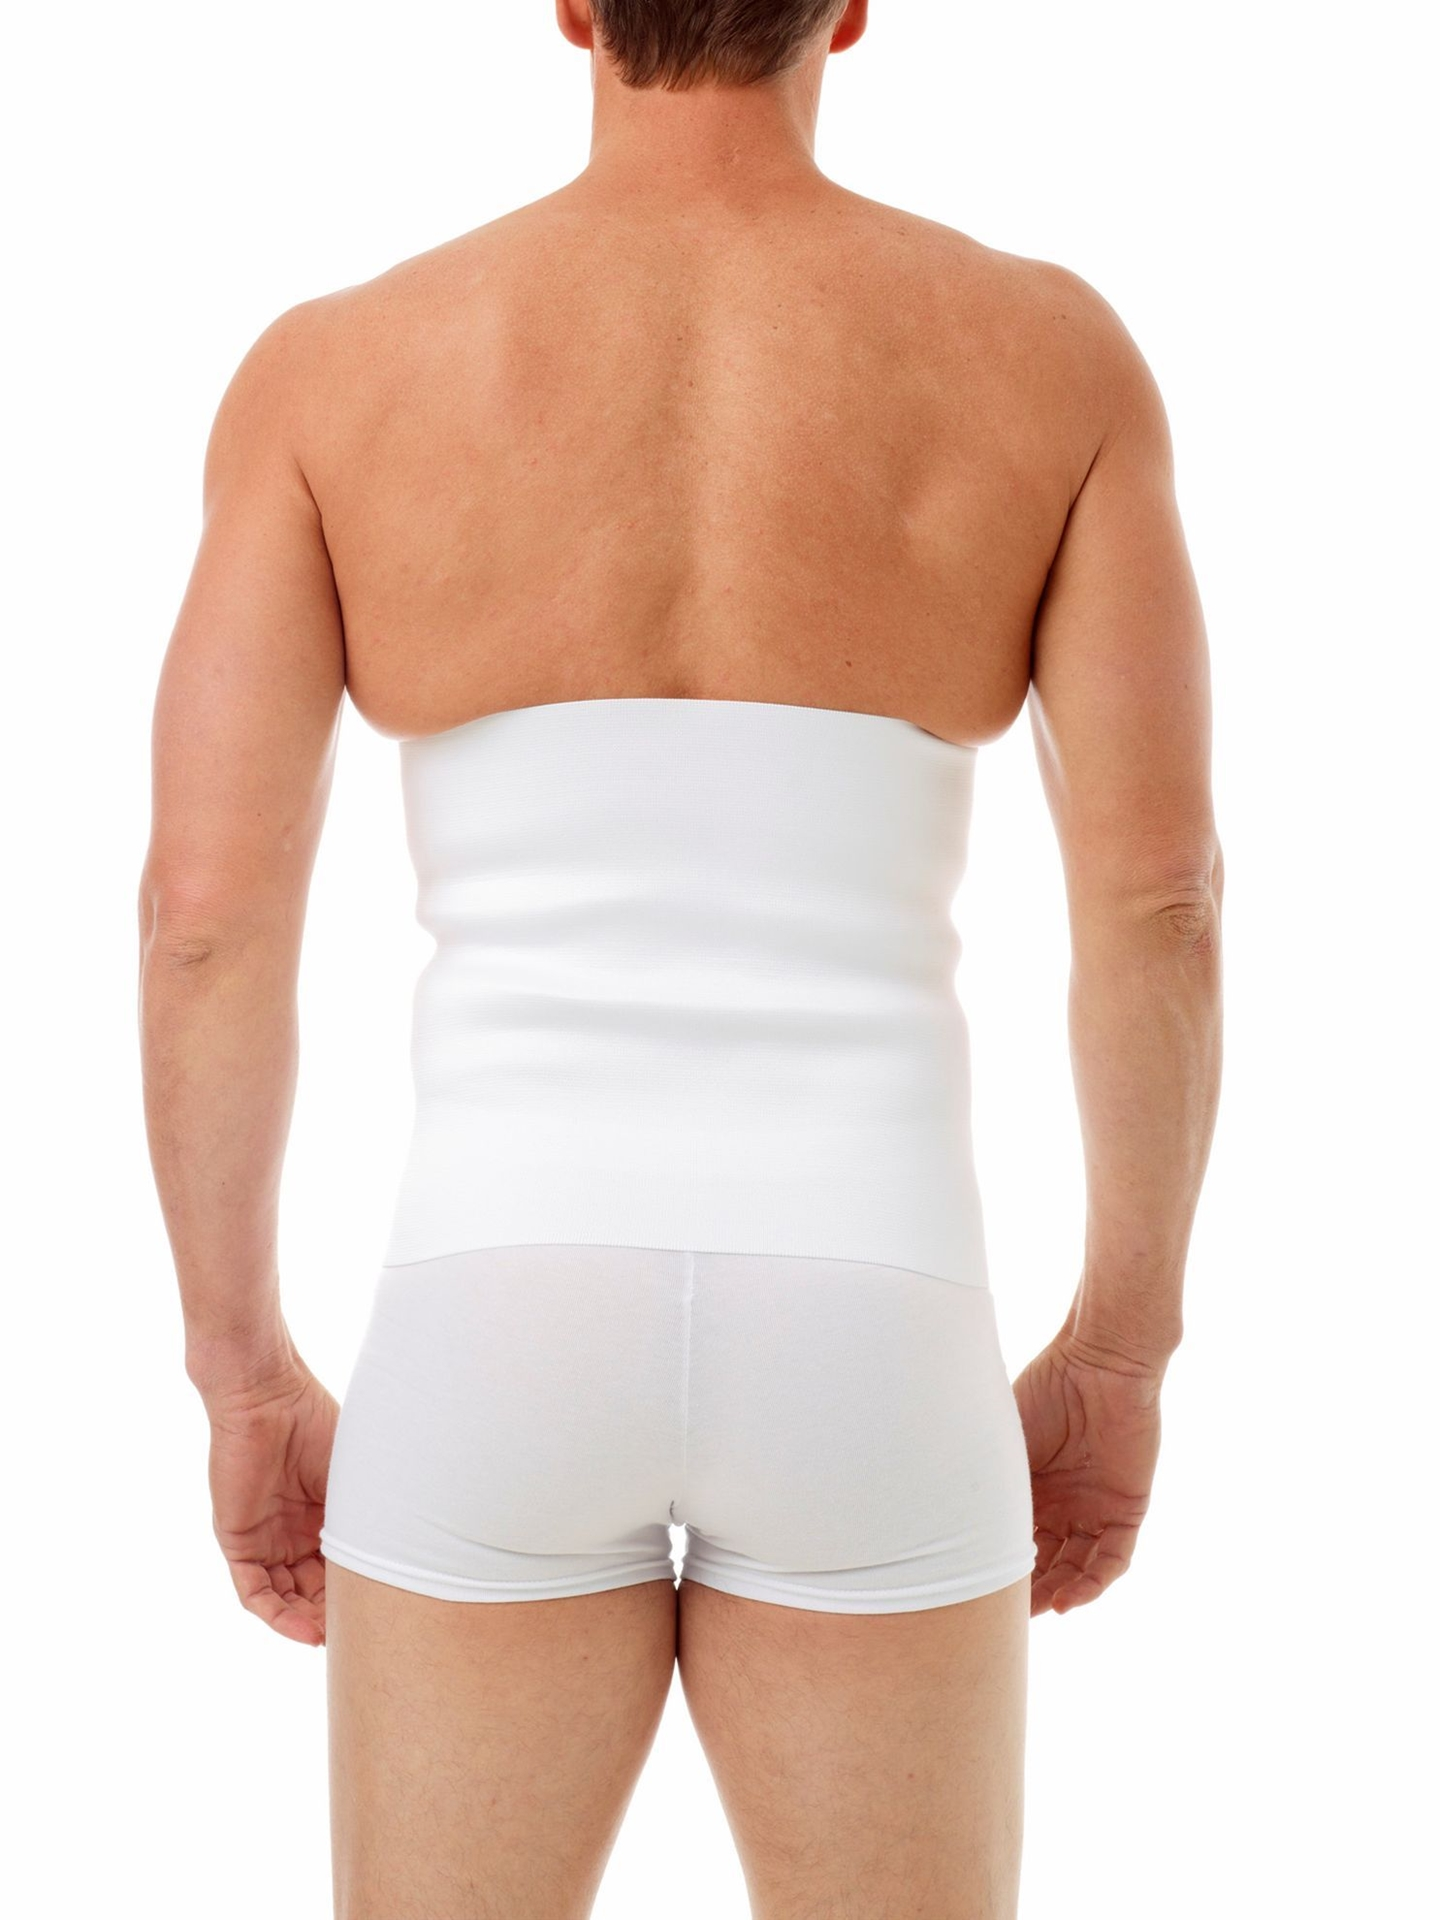 mens girdle belly buster